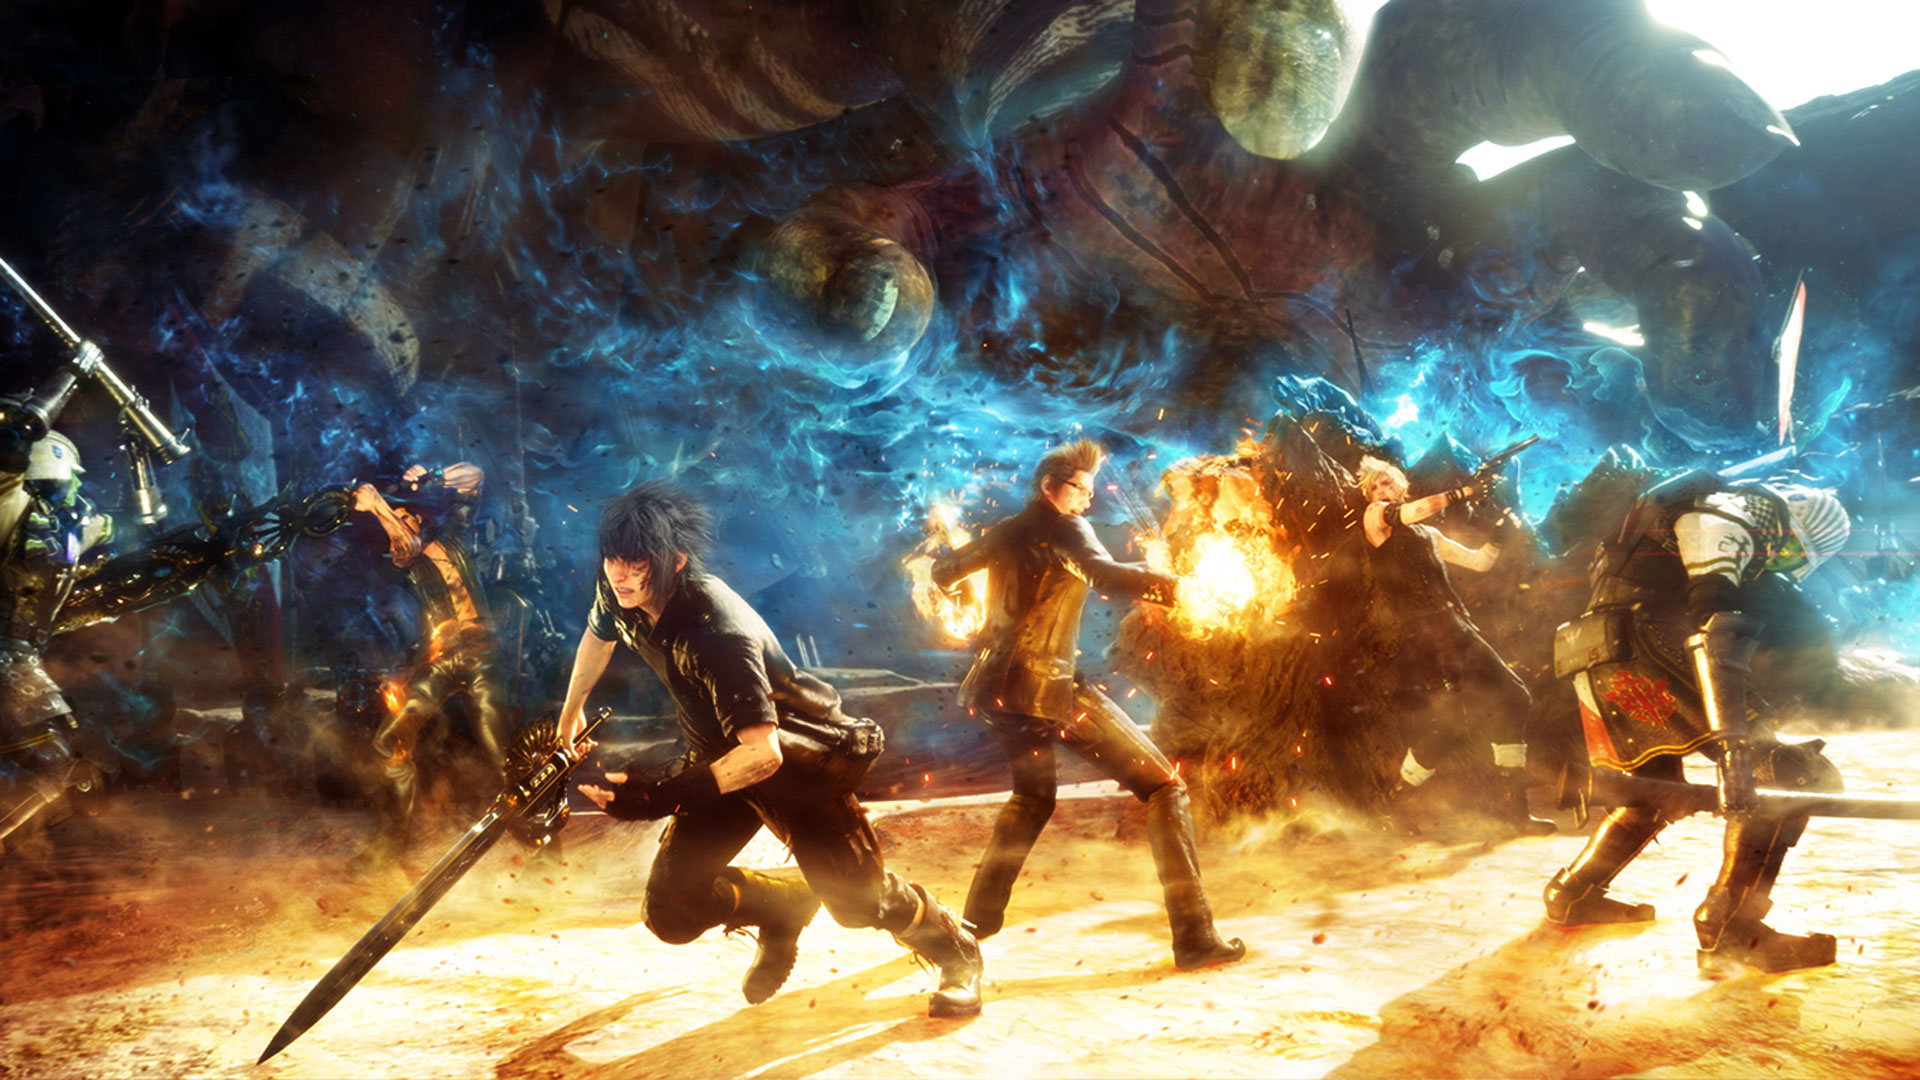 117 Final Fantasy Xv Hd Wallpapers: Final Fantasy XV Wallpapers In Ultra HD